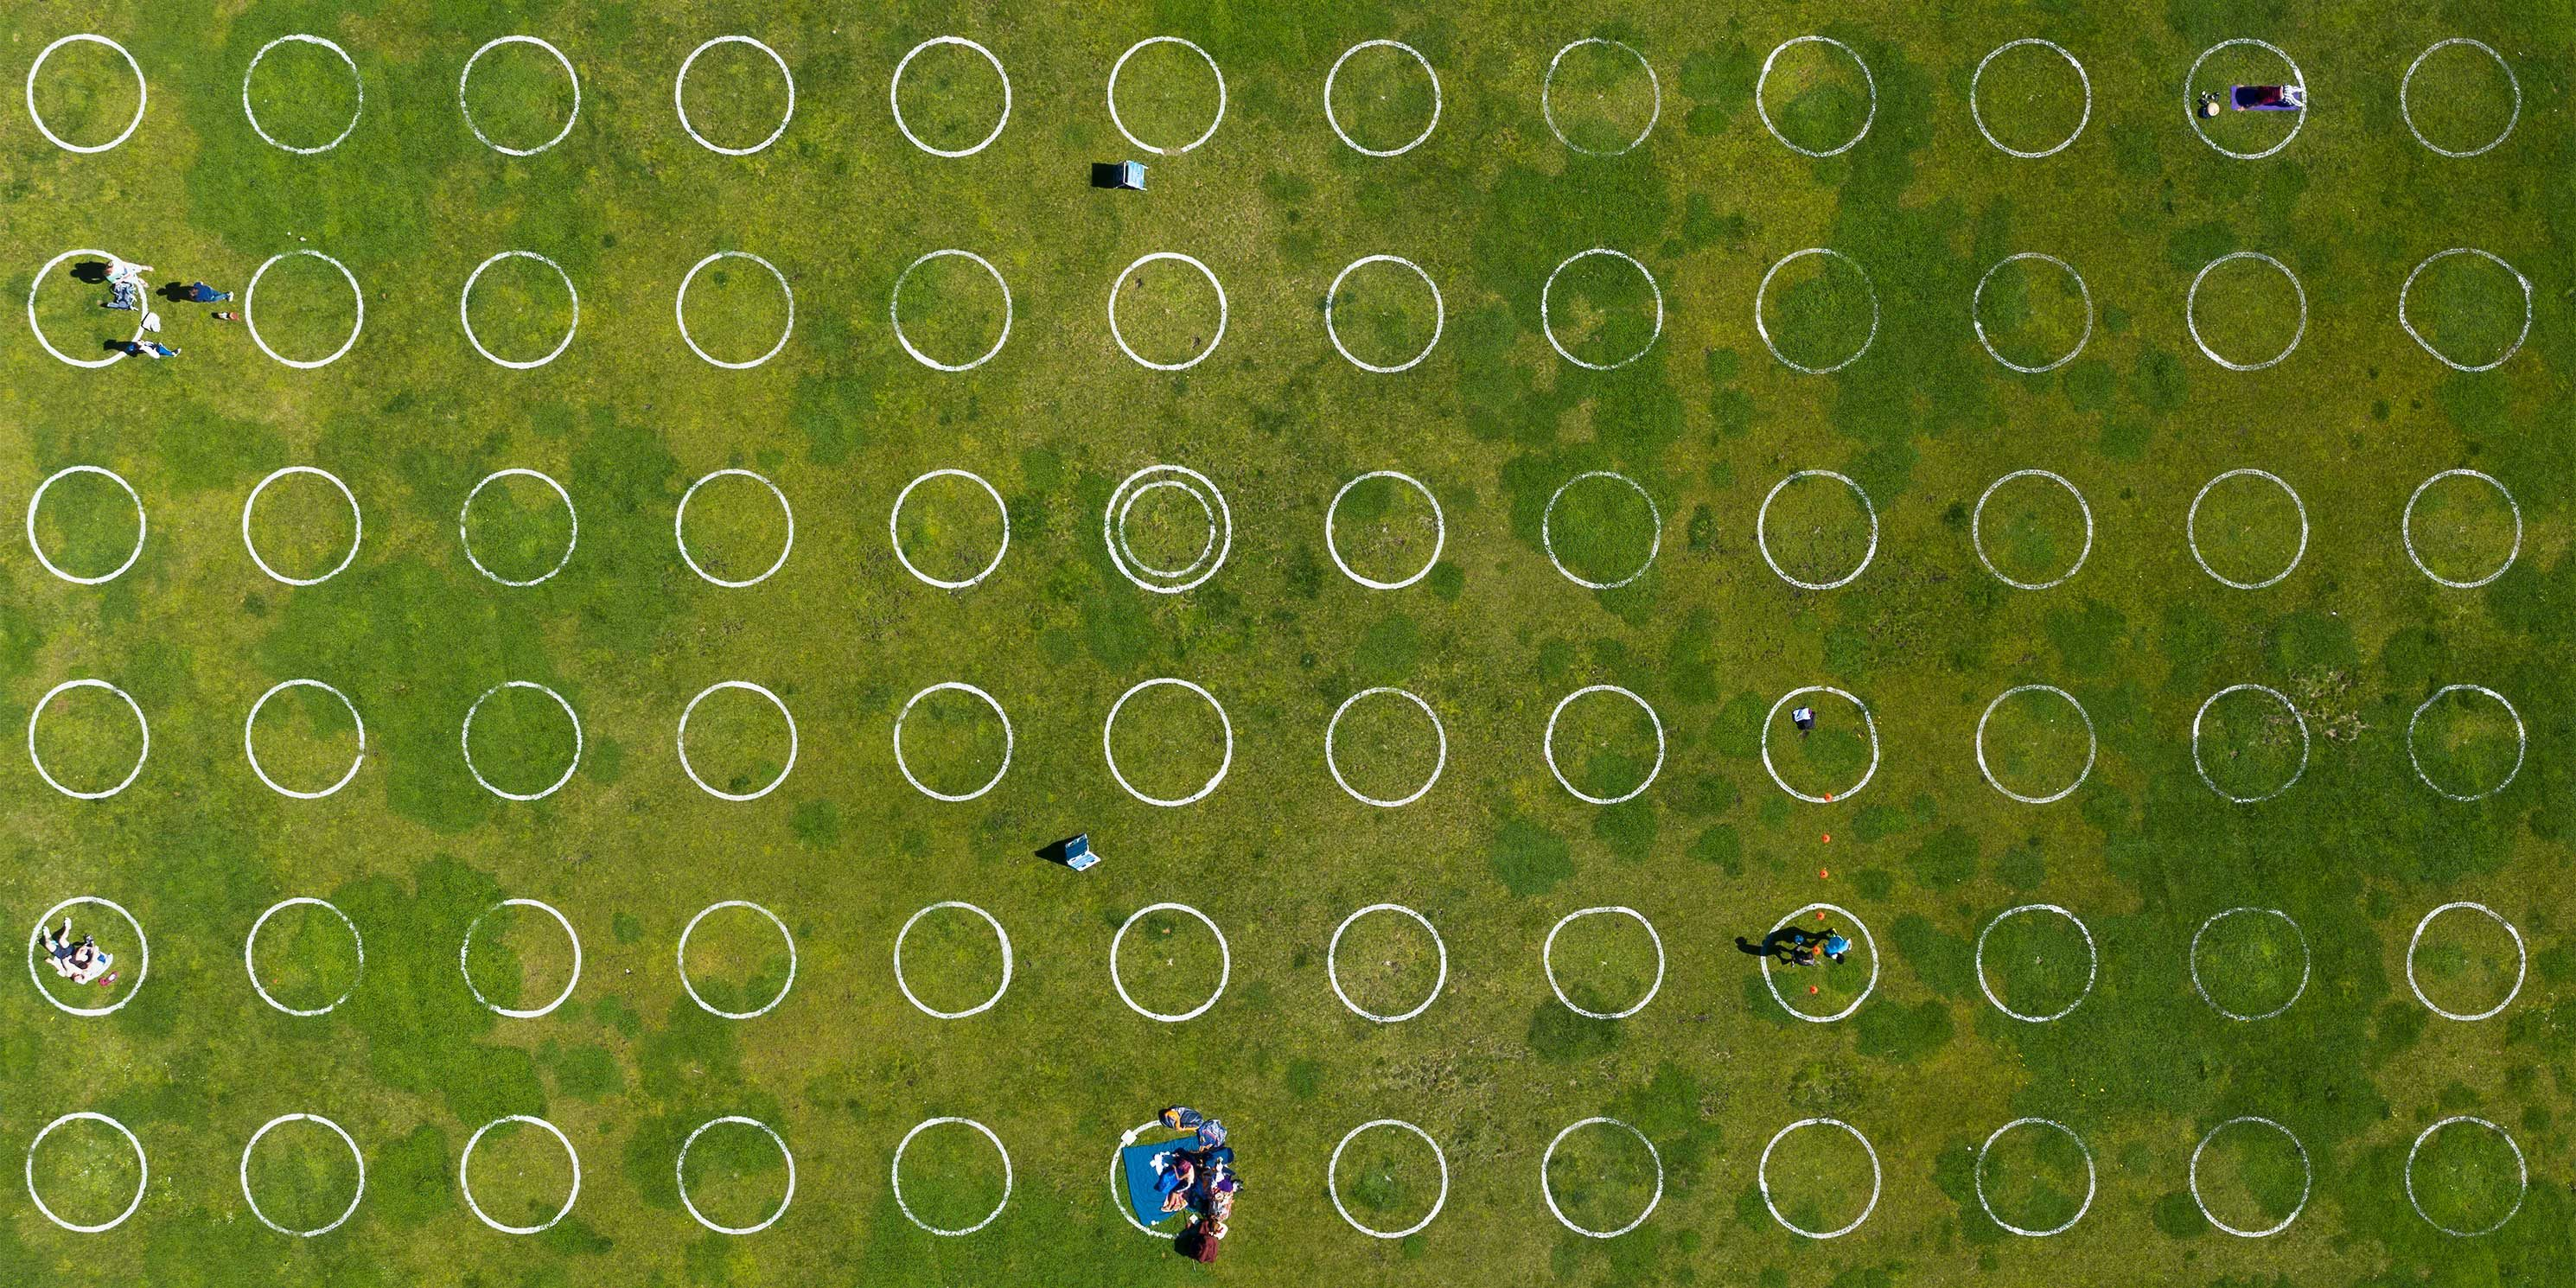 grass with COVID circles to separate park goers